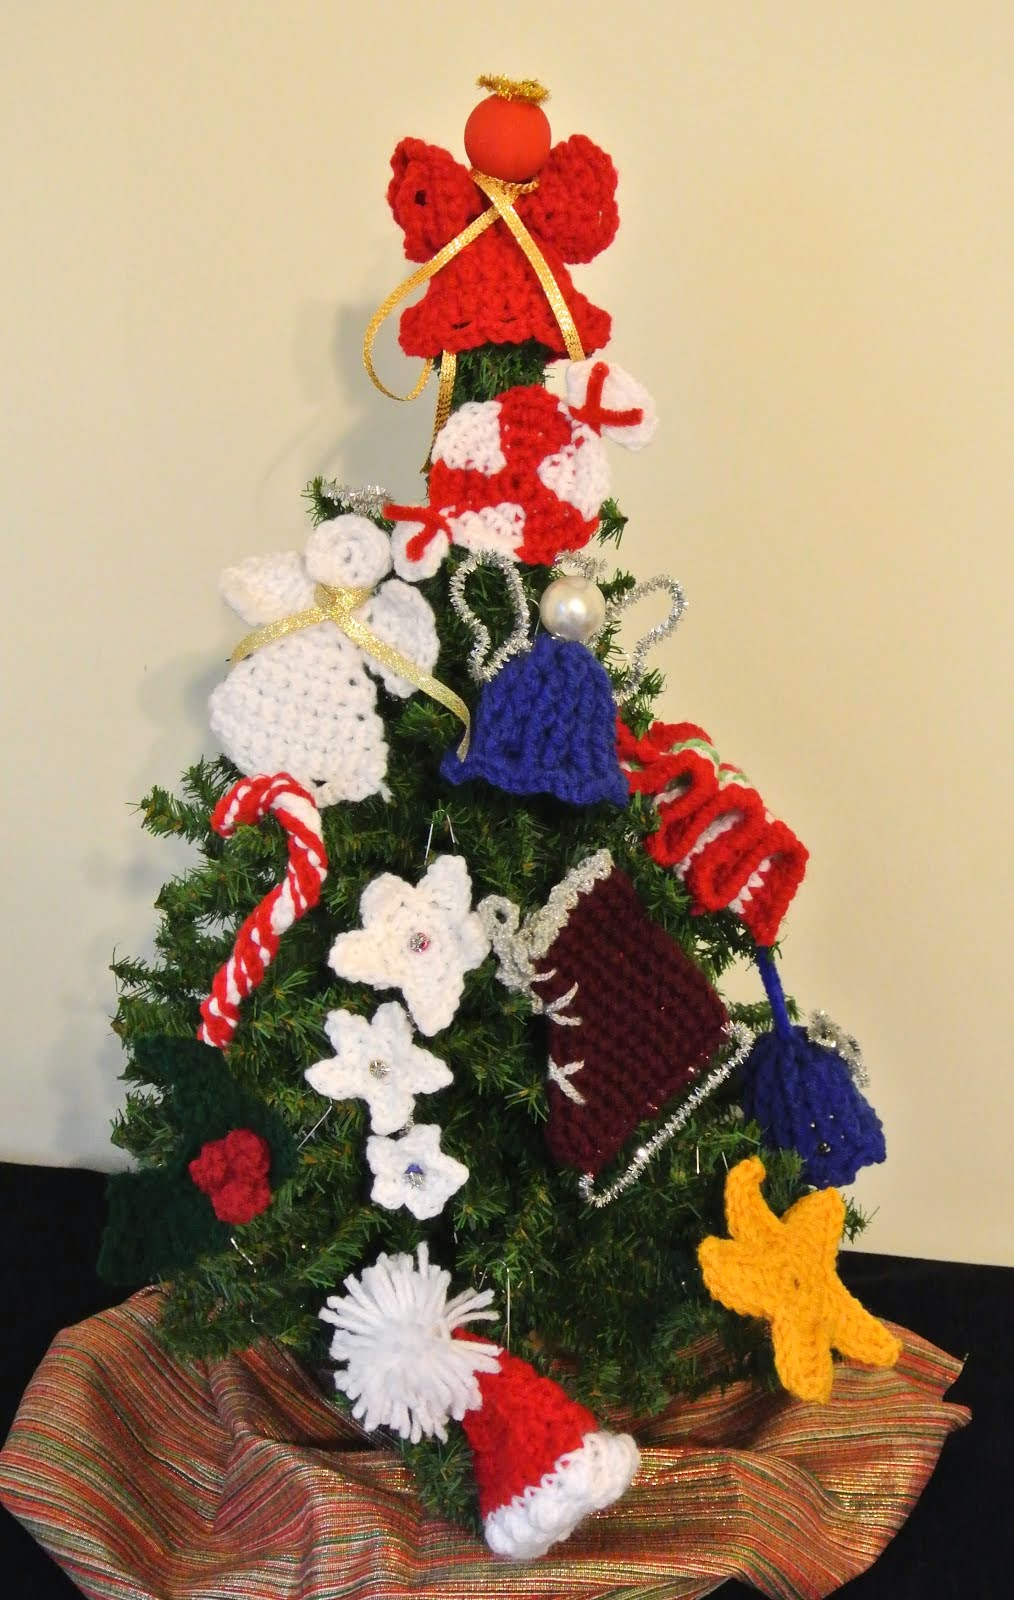 Win a Dozen Crocheted Christmas Ornaments or a $25 Amazon Gift Card